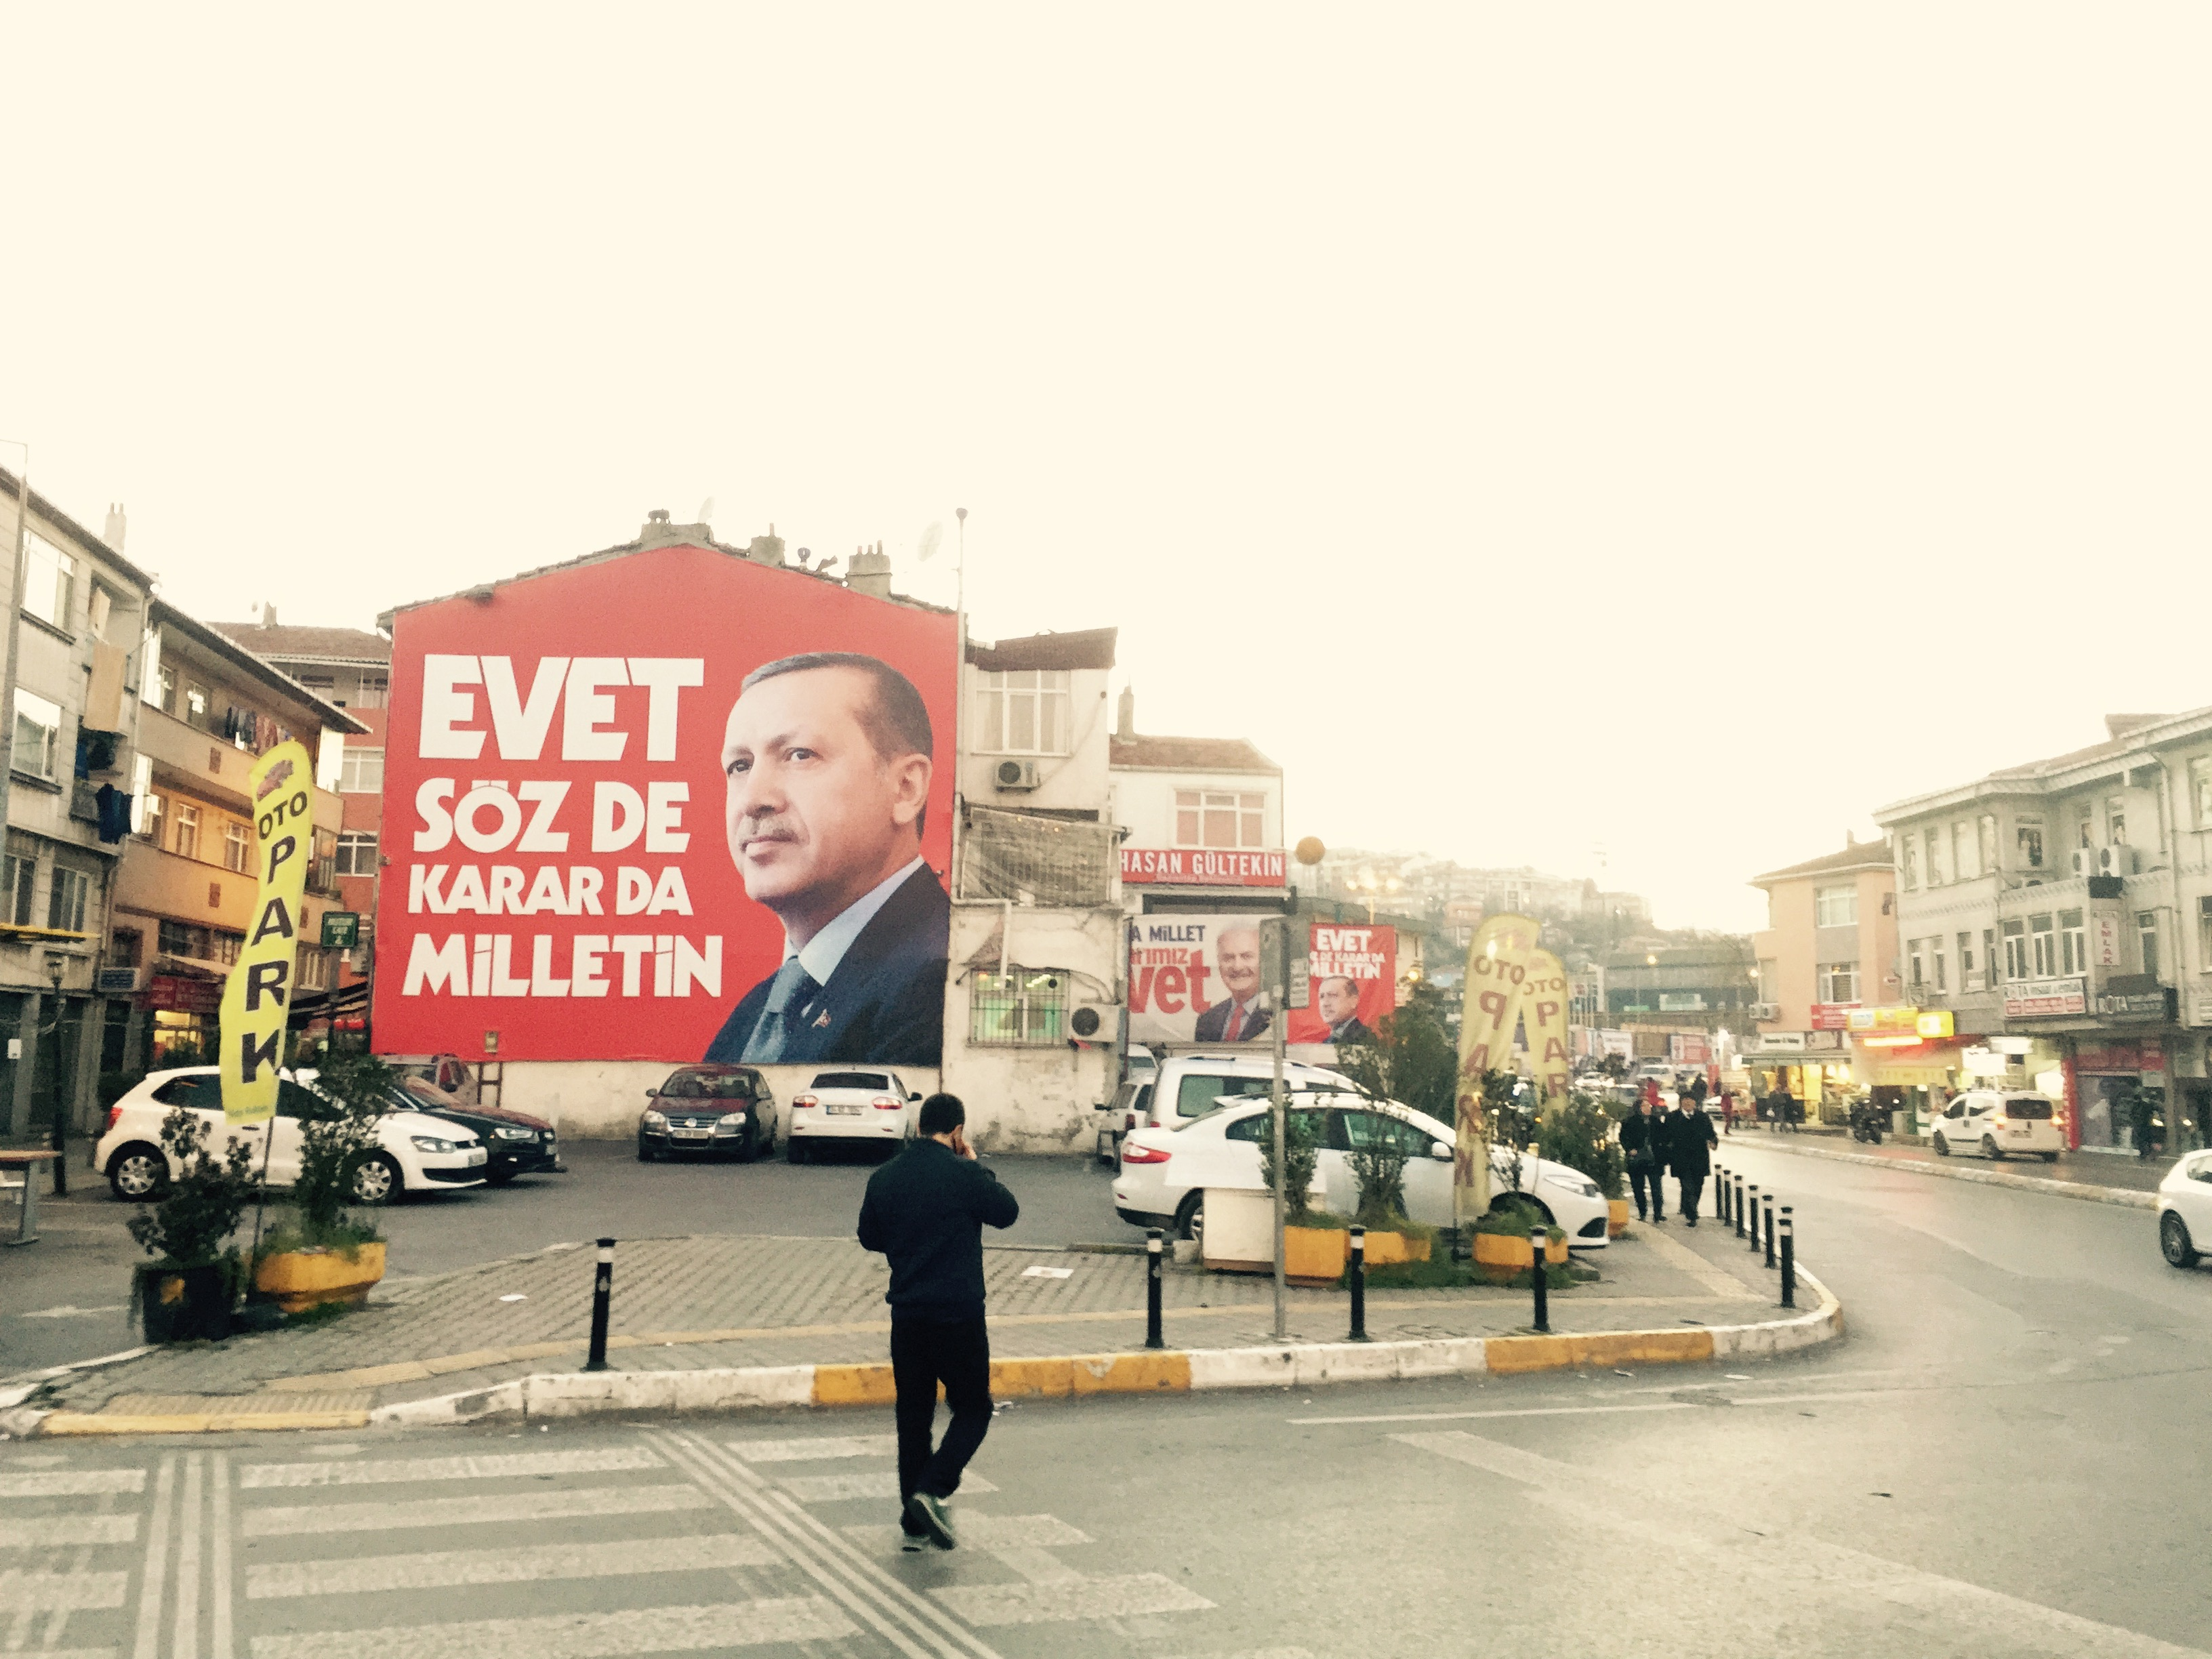 A building-sized portrait of President Erdogan for the Evet campaign. All